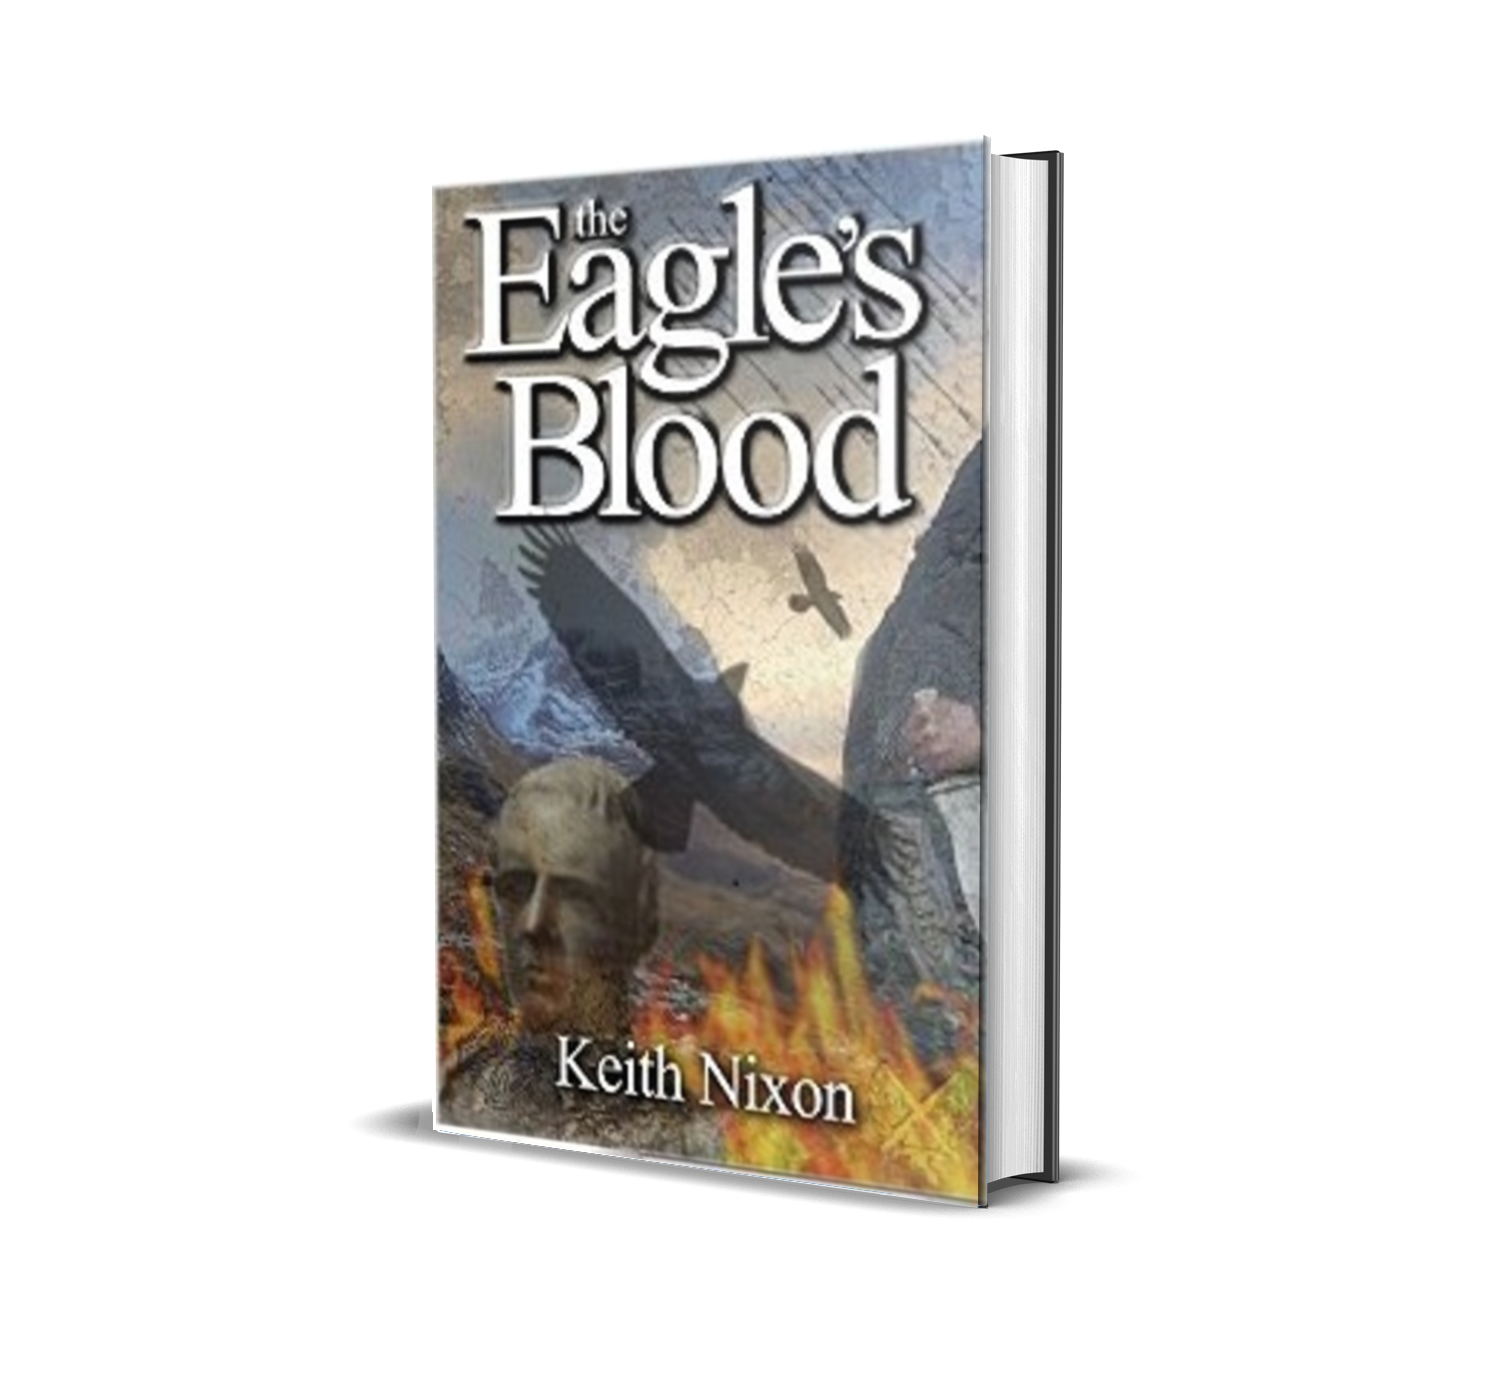 The Eagle's Blood - The British army is shattered, defeat snatched from the jaws of victory by subterfuge and betrayal. Caradoc flees the battlefield, the crown heavy on his head and his heart set on retribution. He has to make hard decisions and tough compromises, but with the sovereignty of Britain at stake, personal pride sometimes has to take second place.Emperor Claudius is determined to make as much political mileage as possible out of the Roman victory in an attempt to consolidate his own position. That does not sit well with the Roman military, who have their own objectives and who will do whatever it takes to achieve them.As the Romans consolidate their gains and begin to push west, Caradoc finds he has few friends left. So he must turn to the Durotriges, a wild, hill fort dwelling tribe. But the Durotriges are riven by strife and petty squabbles.Aulus Plautius, commander of the Roman army, brings his siege weapons to bear, can Caradoc resist the onslaught?